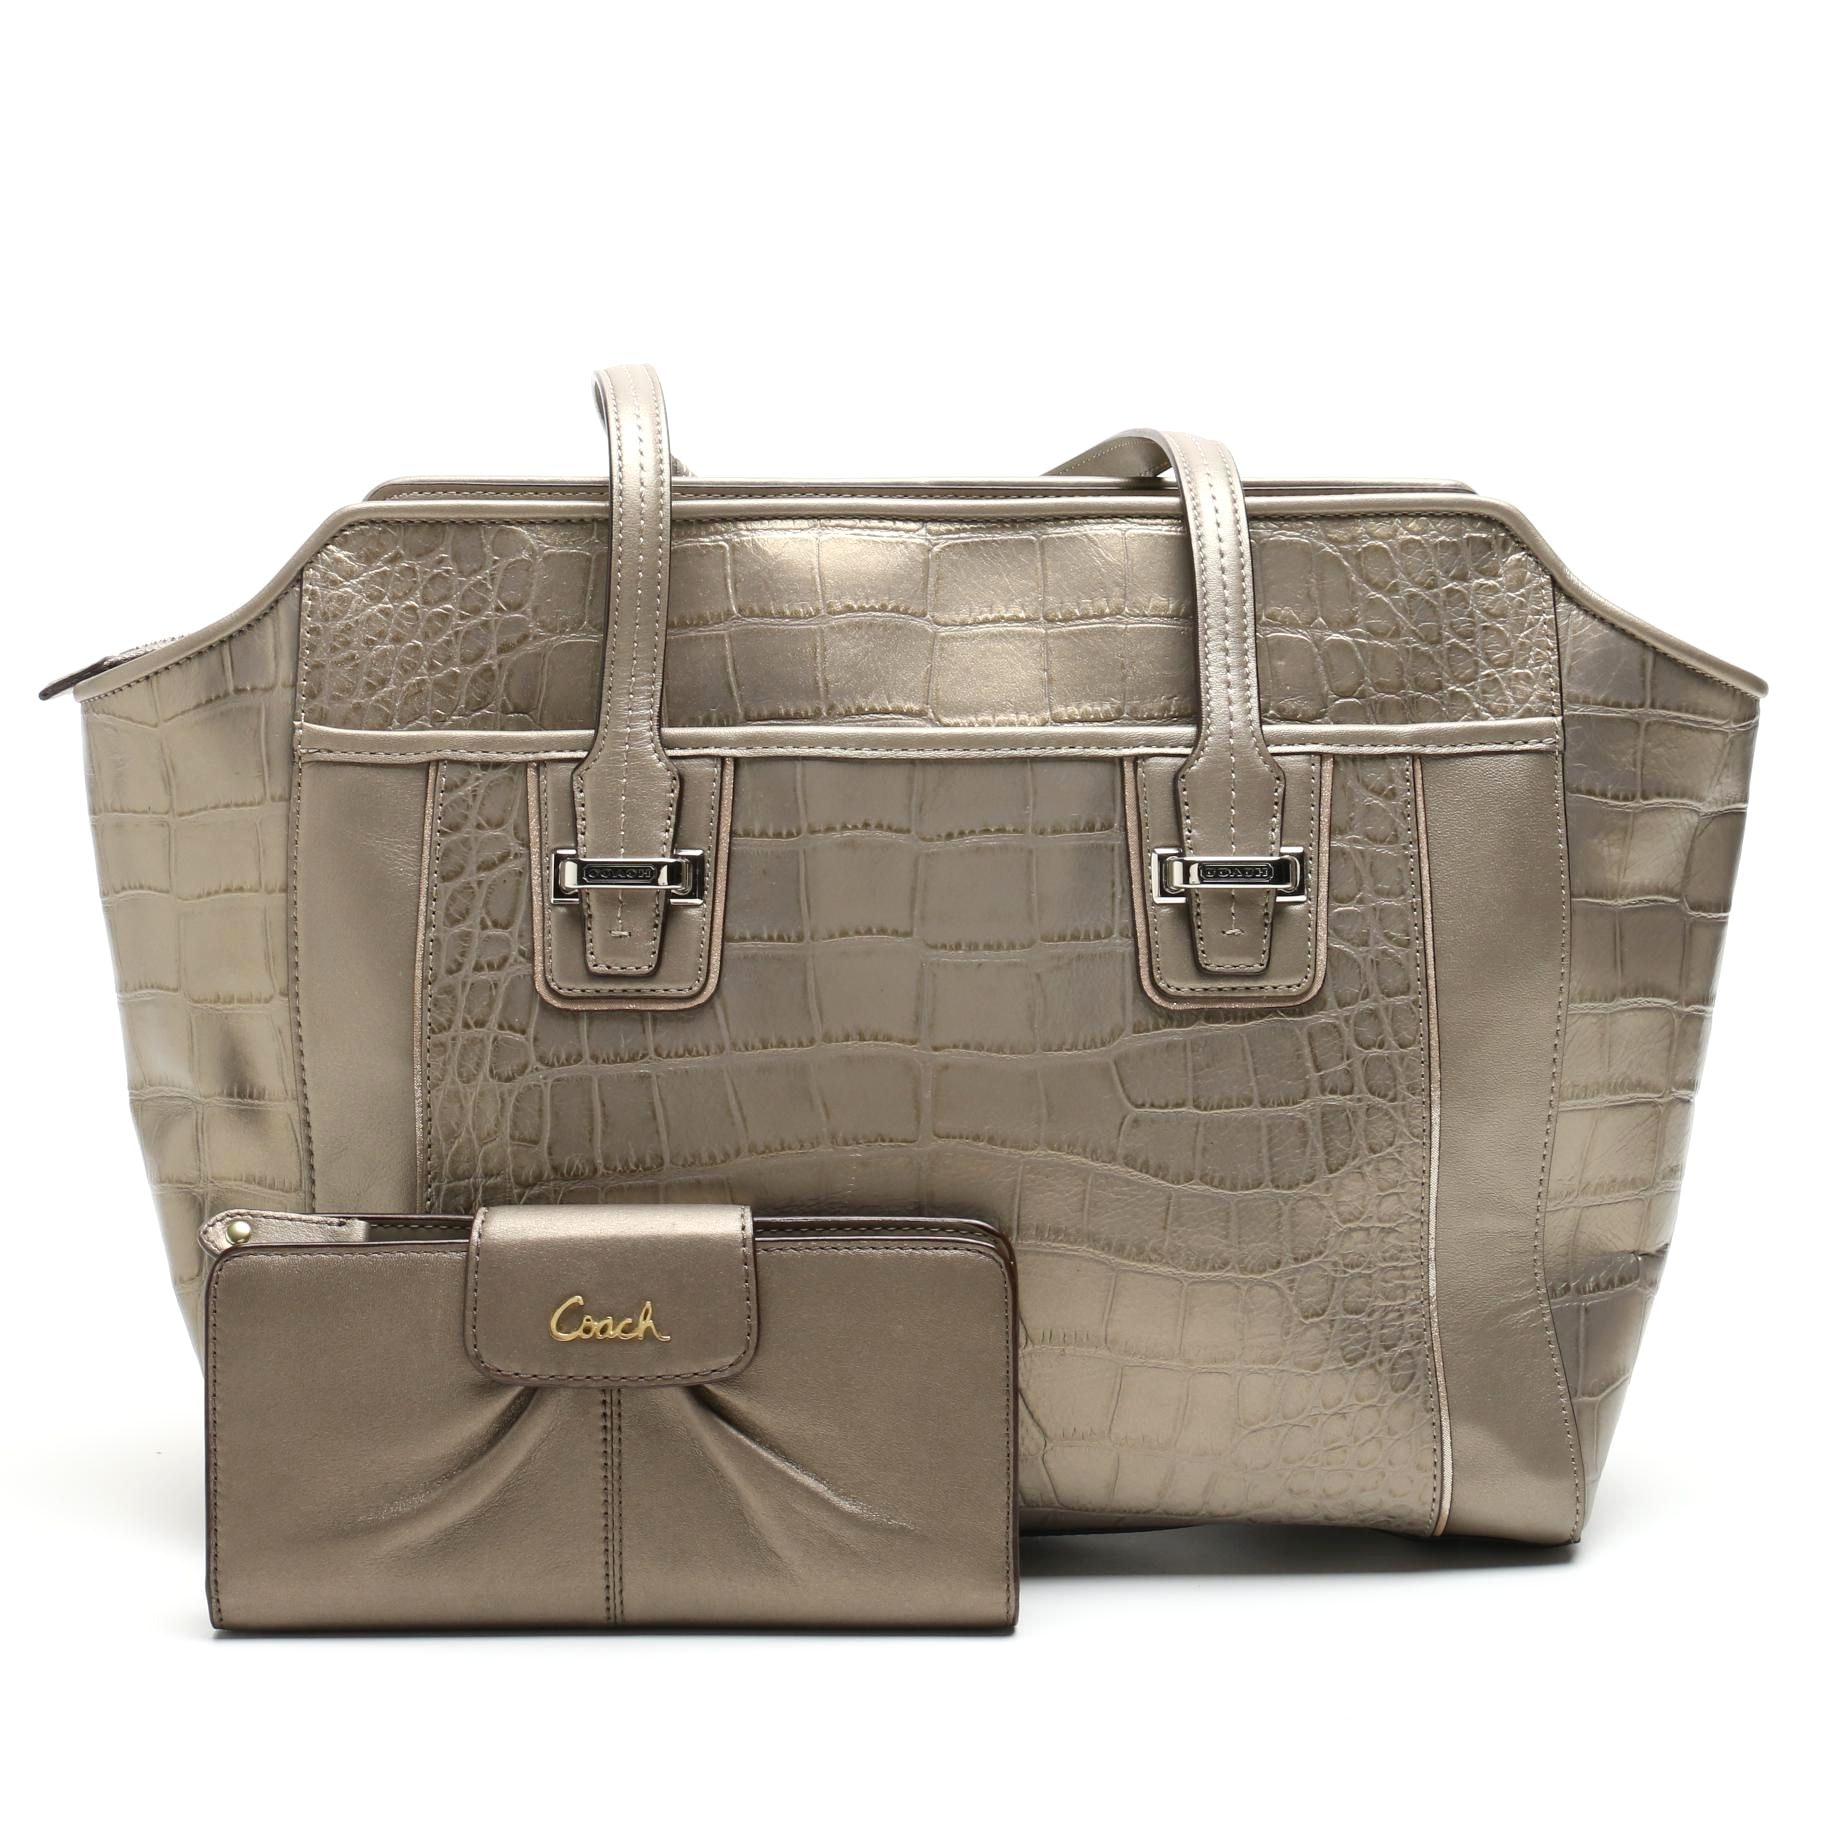 Coach Taylor Embossed Leather Alexis Carryall and Ashley Leather Wallet